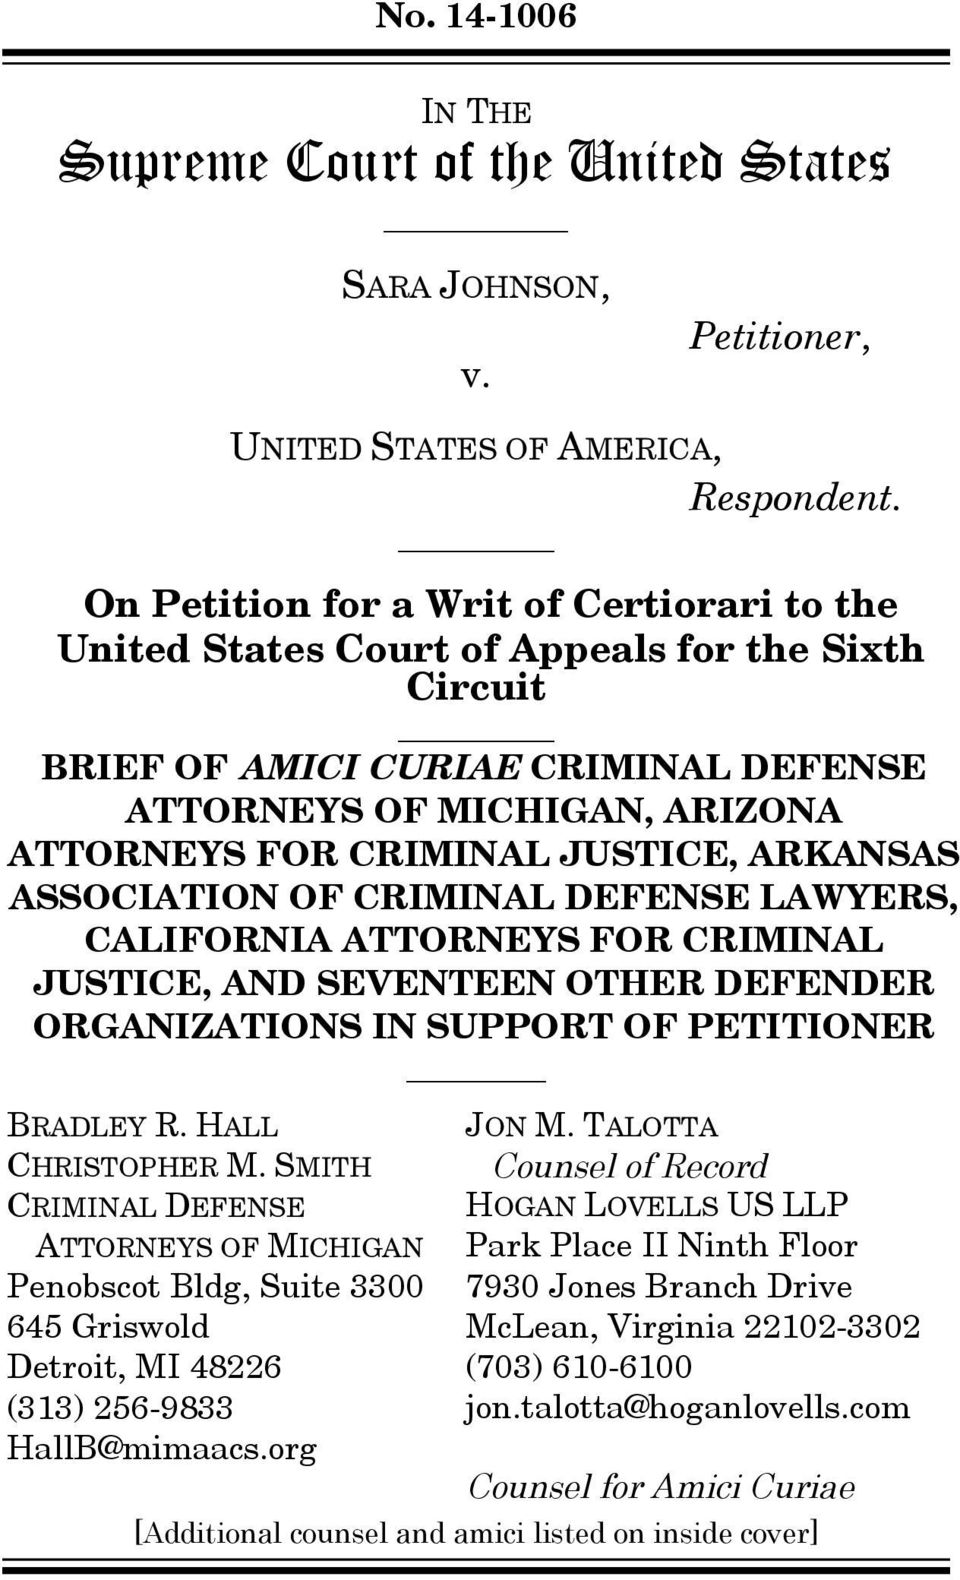 ARKANSAS ASSOCIATION OF CRIMINAL DEFENSE LAWYERS, CALIFORNIA ATTORNEYS FOR CRIMINAL JUSTICE, AND SEVENTEEN OTHER DEFENDER ORGANIZATIONS IN SUPPORT OF PETITIONER BRADLEY R. HALL CHRISTOPHER M.